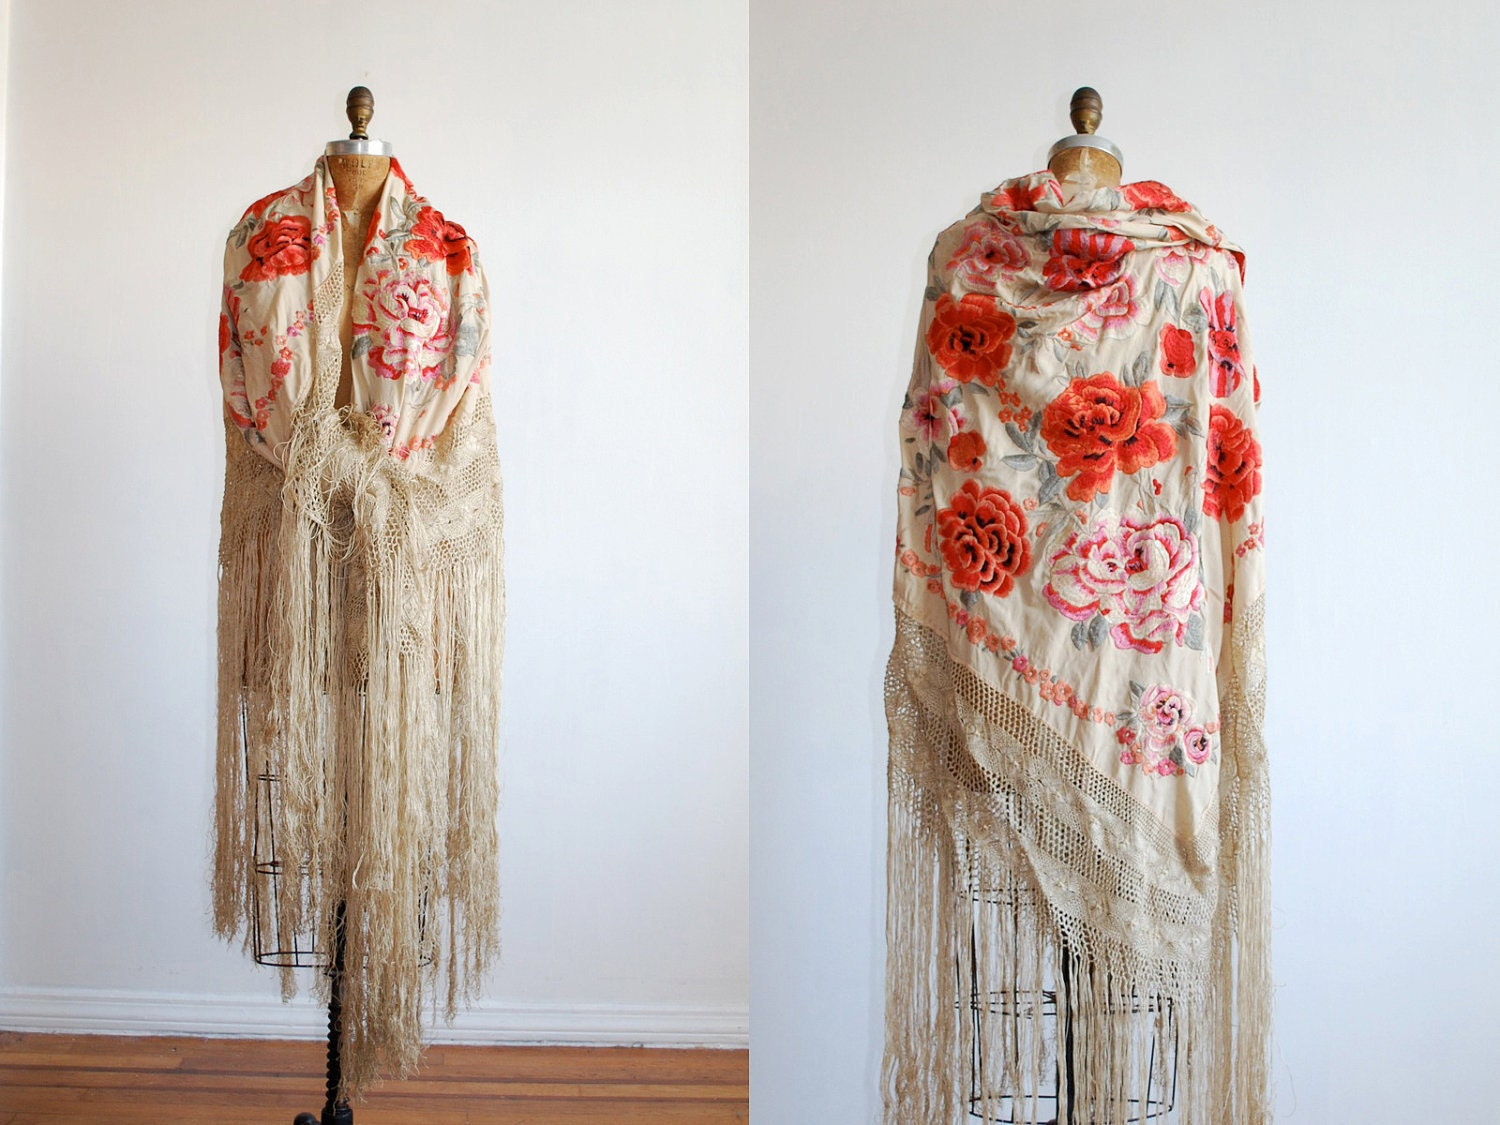 Image of an antique silken shawl in the Edwardian and Victorian fashion